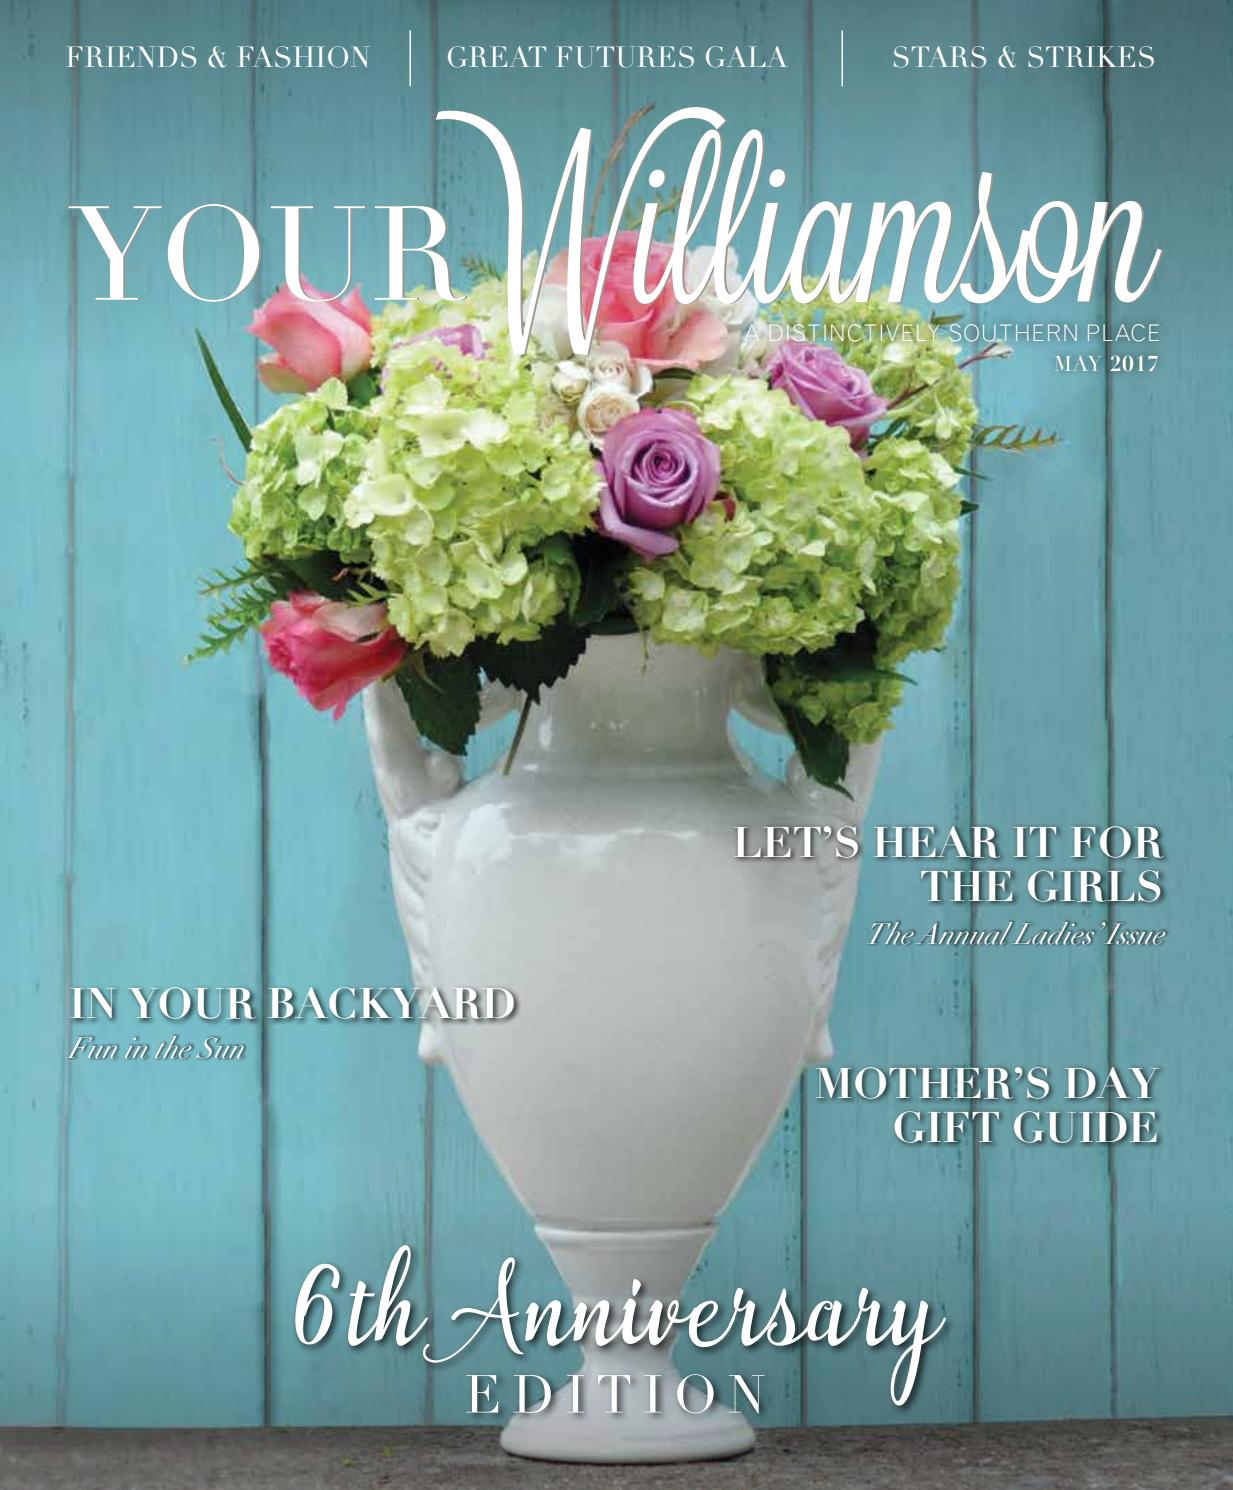 Your williamson may 2017 by your williamson a distinctively your williamson may 2017 by your williamson a distinctively southern place issuu izmirmasajfo